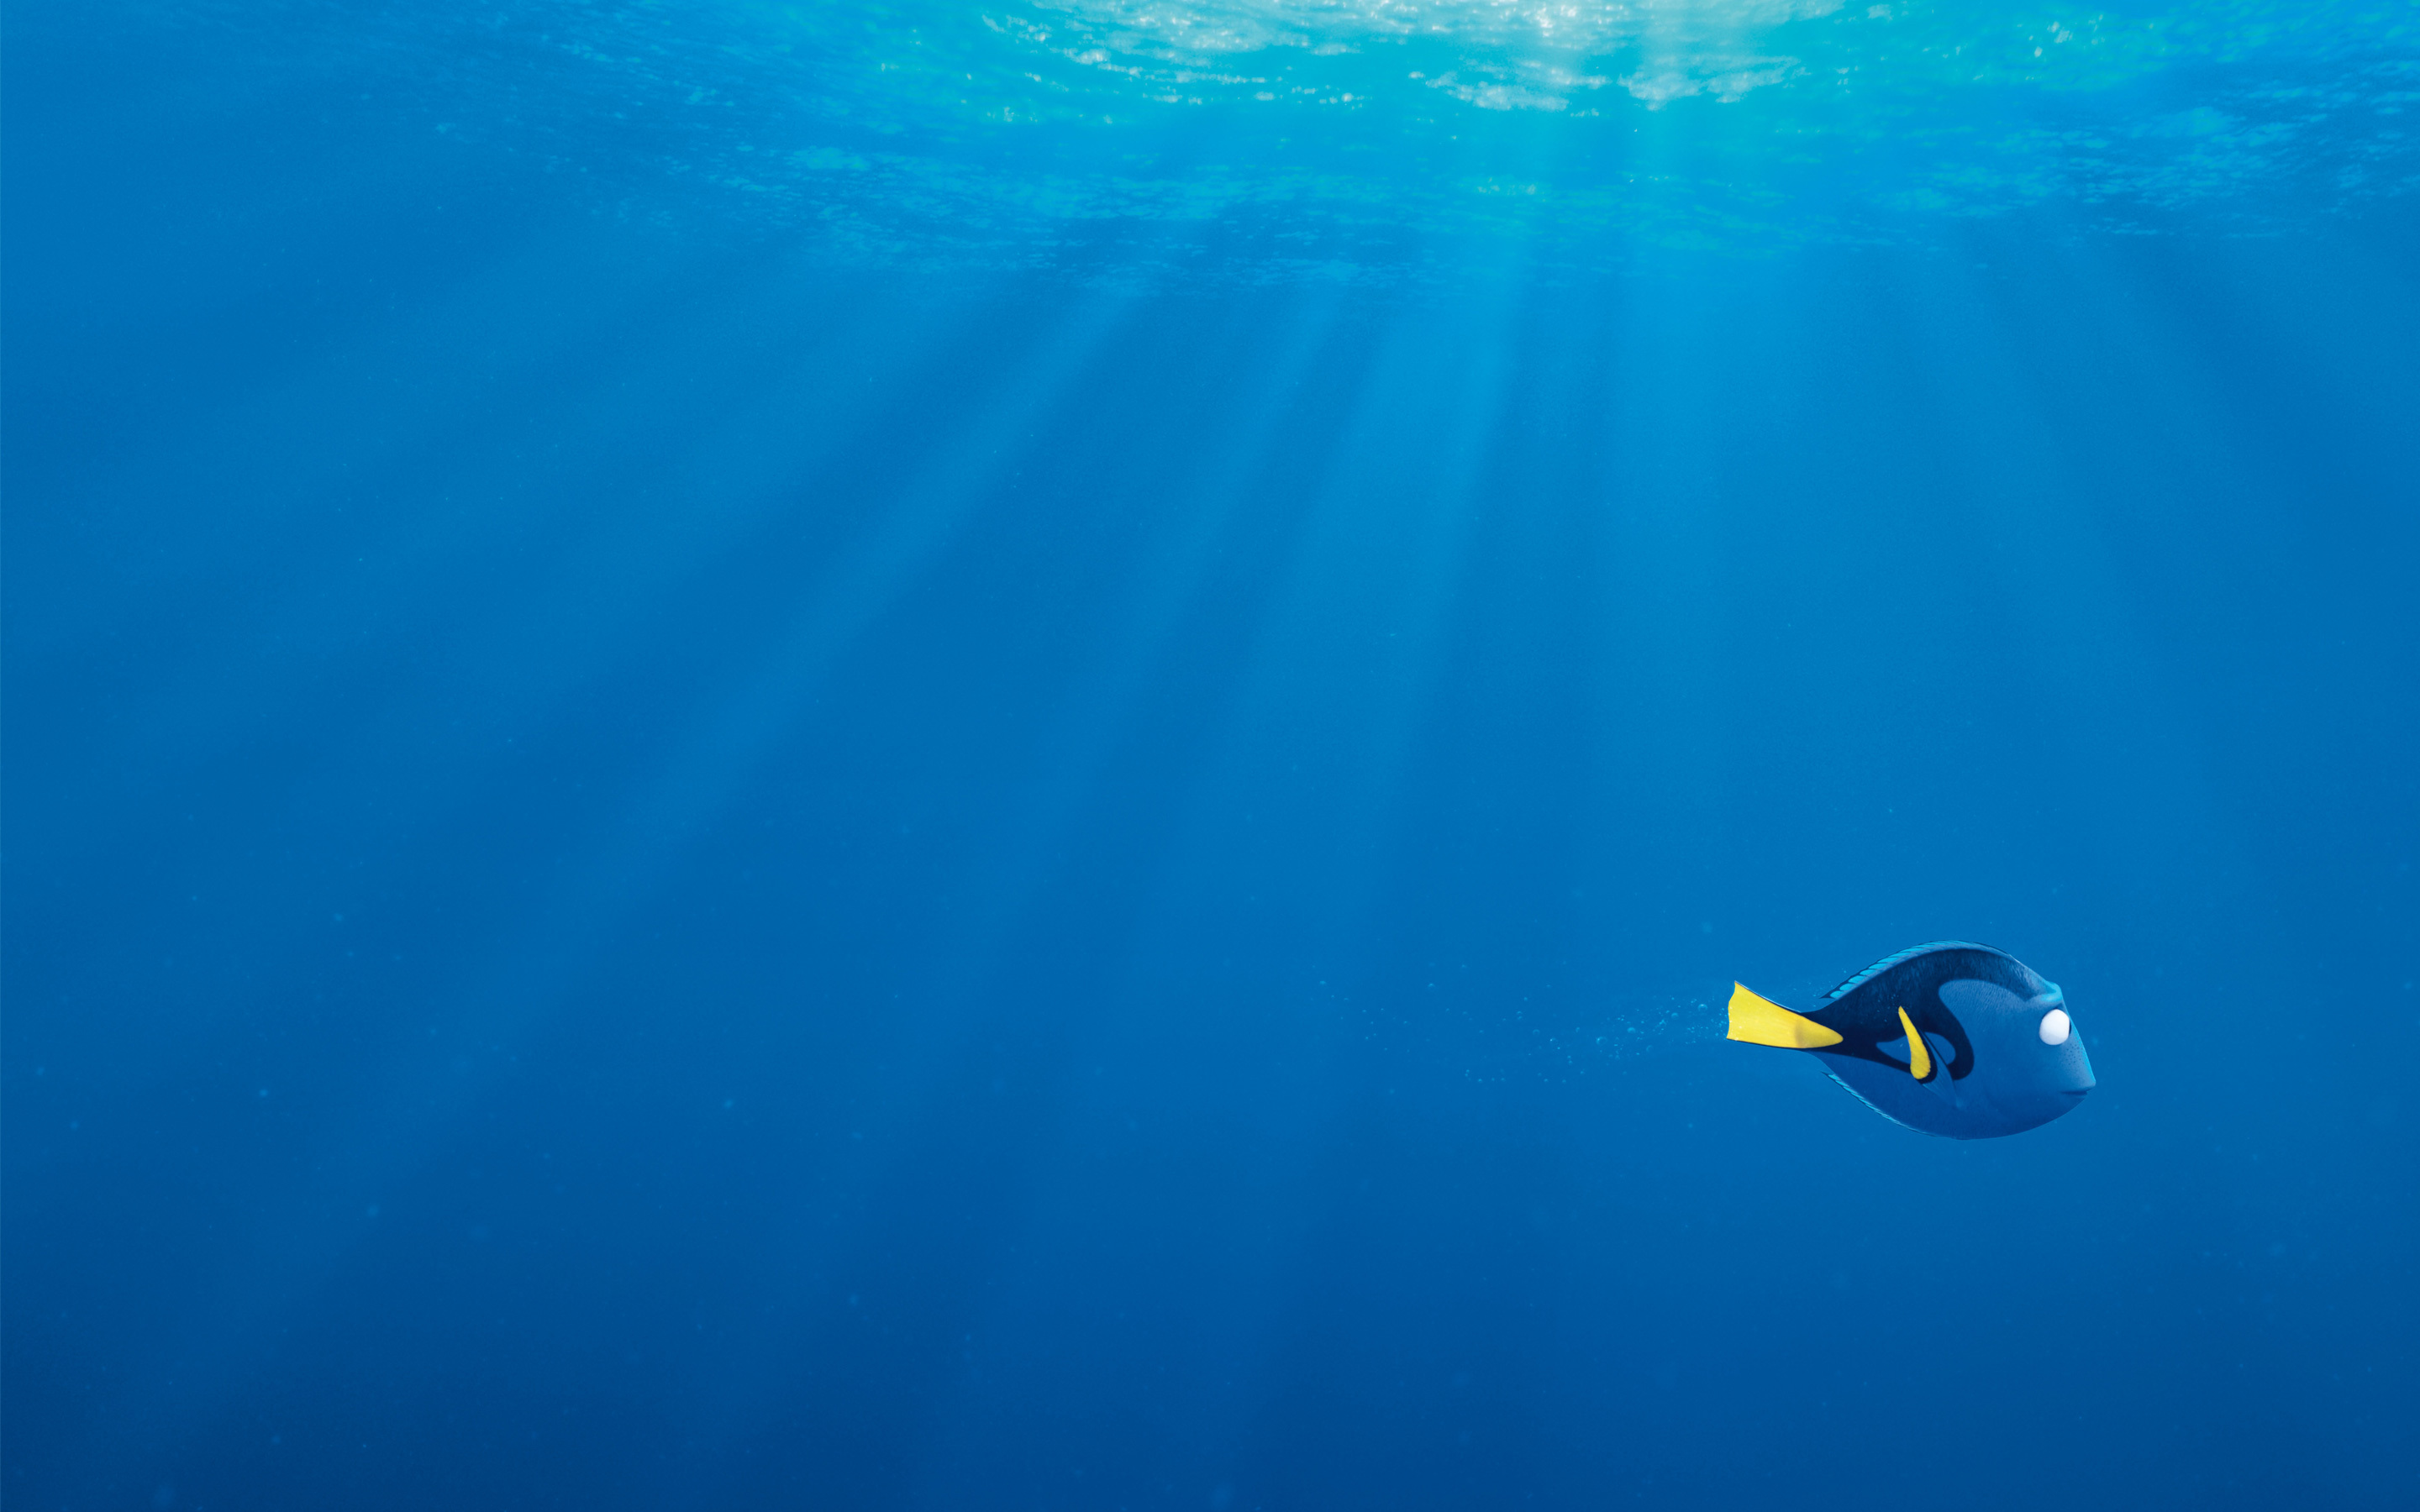 Finding Dory Wallpapers ID712224